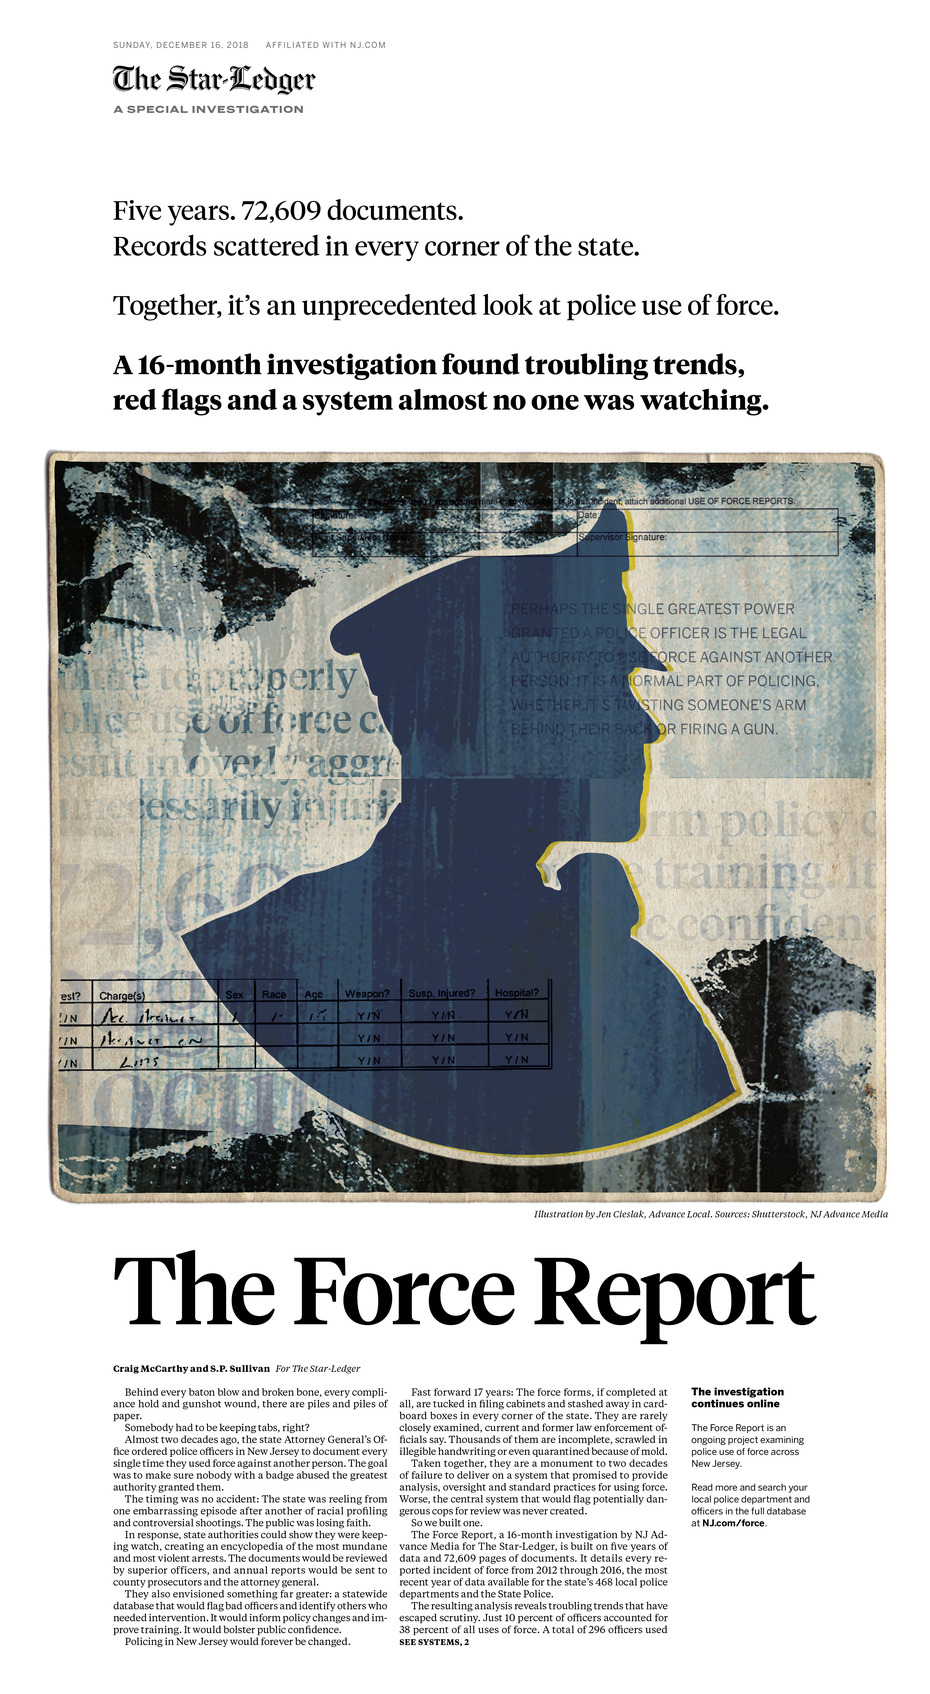 Star-Ledger: The Force Report